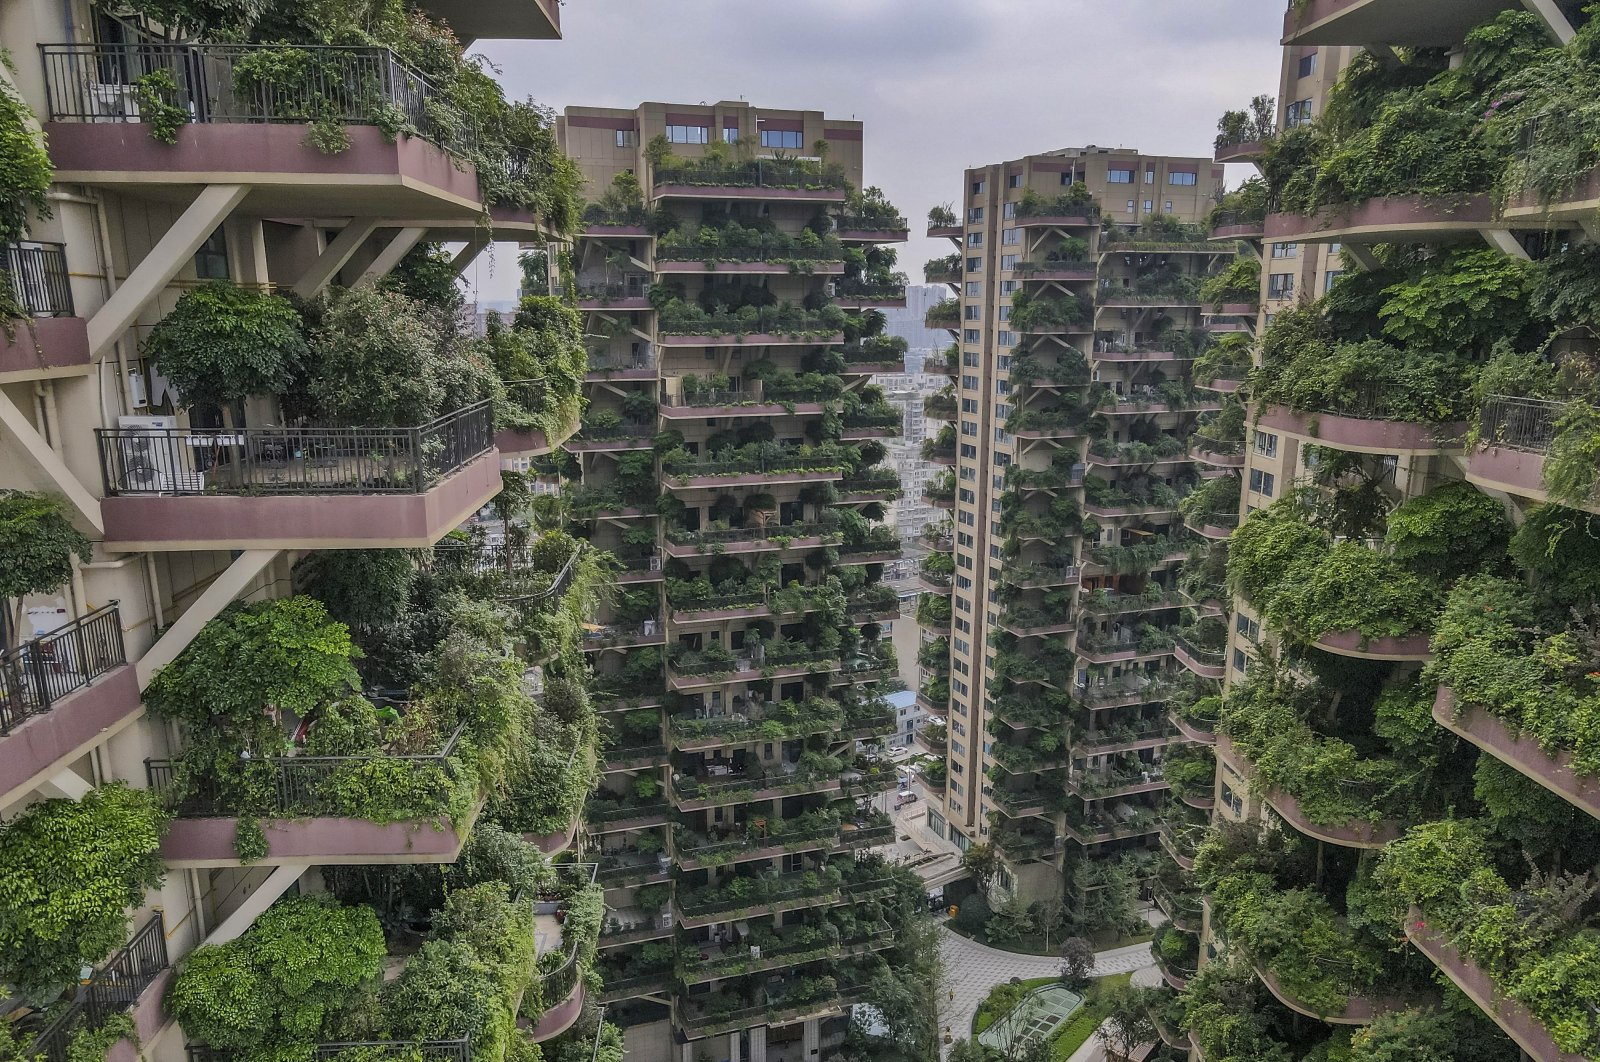 A photo taken with a drone shows an aerial view of the Qiyi City Forest Garden residential buildings complex in Chengdu, China, Sept. 15, 2020. (EPA Photo)